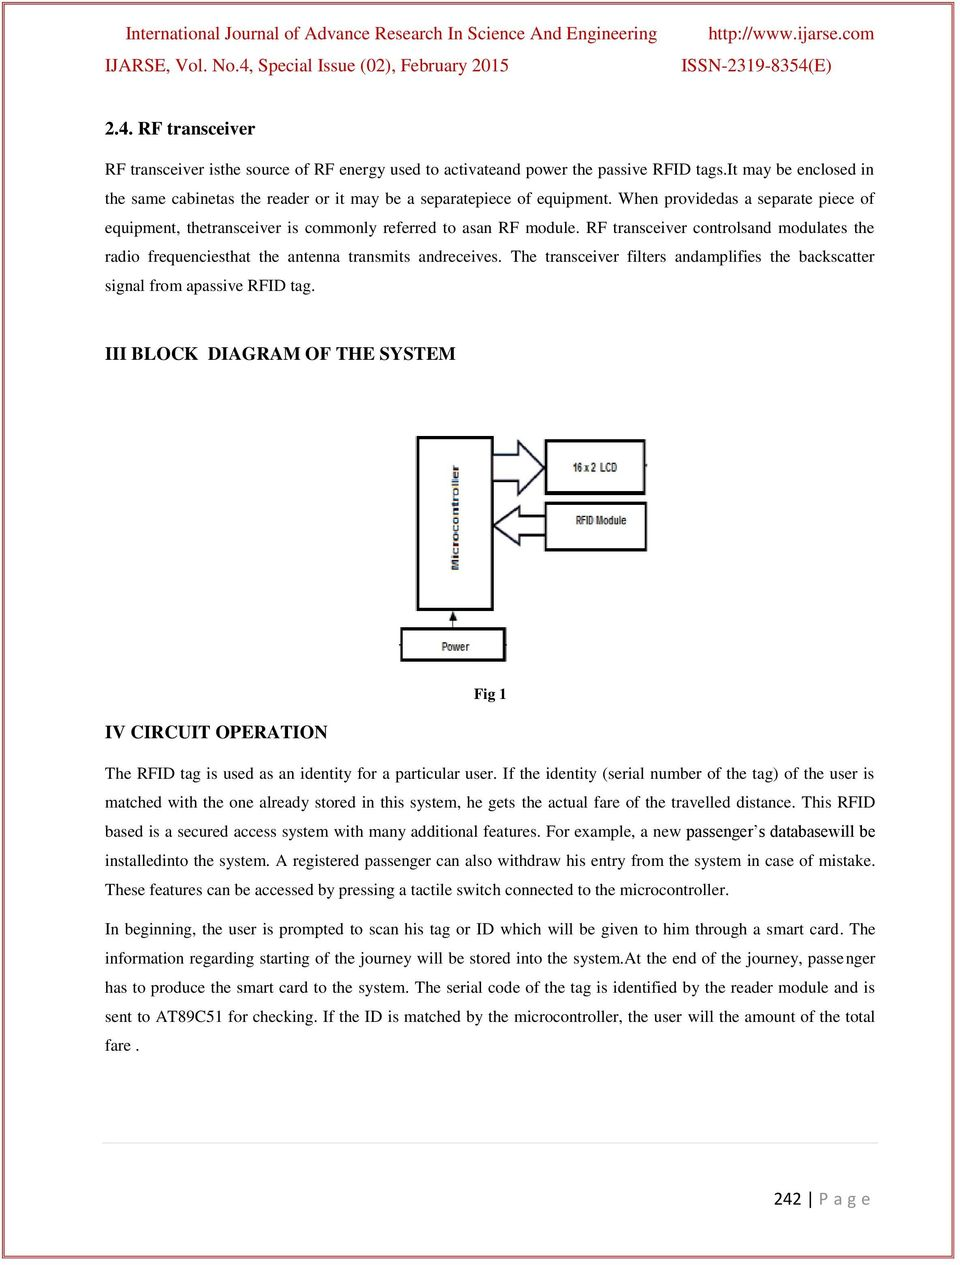 Rfid Based Automated Low Cost Data Acquisition System Forpublic Is Basic Block Diagram Of Highway Toll Collection Rf Transceiver Controlsand Modulates The Radio Frequenciesthat Antenna Transmits Andreceives Filters Andamplifies